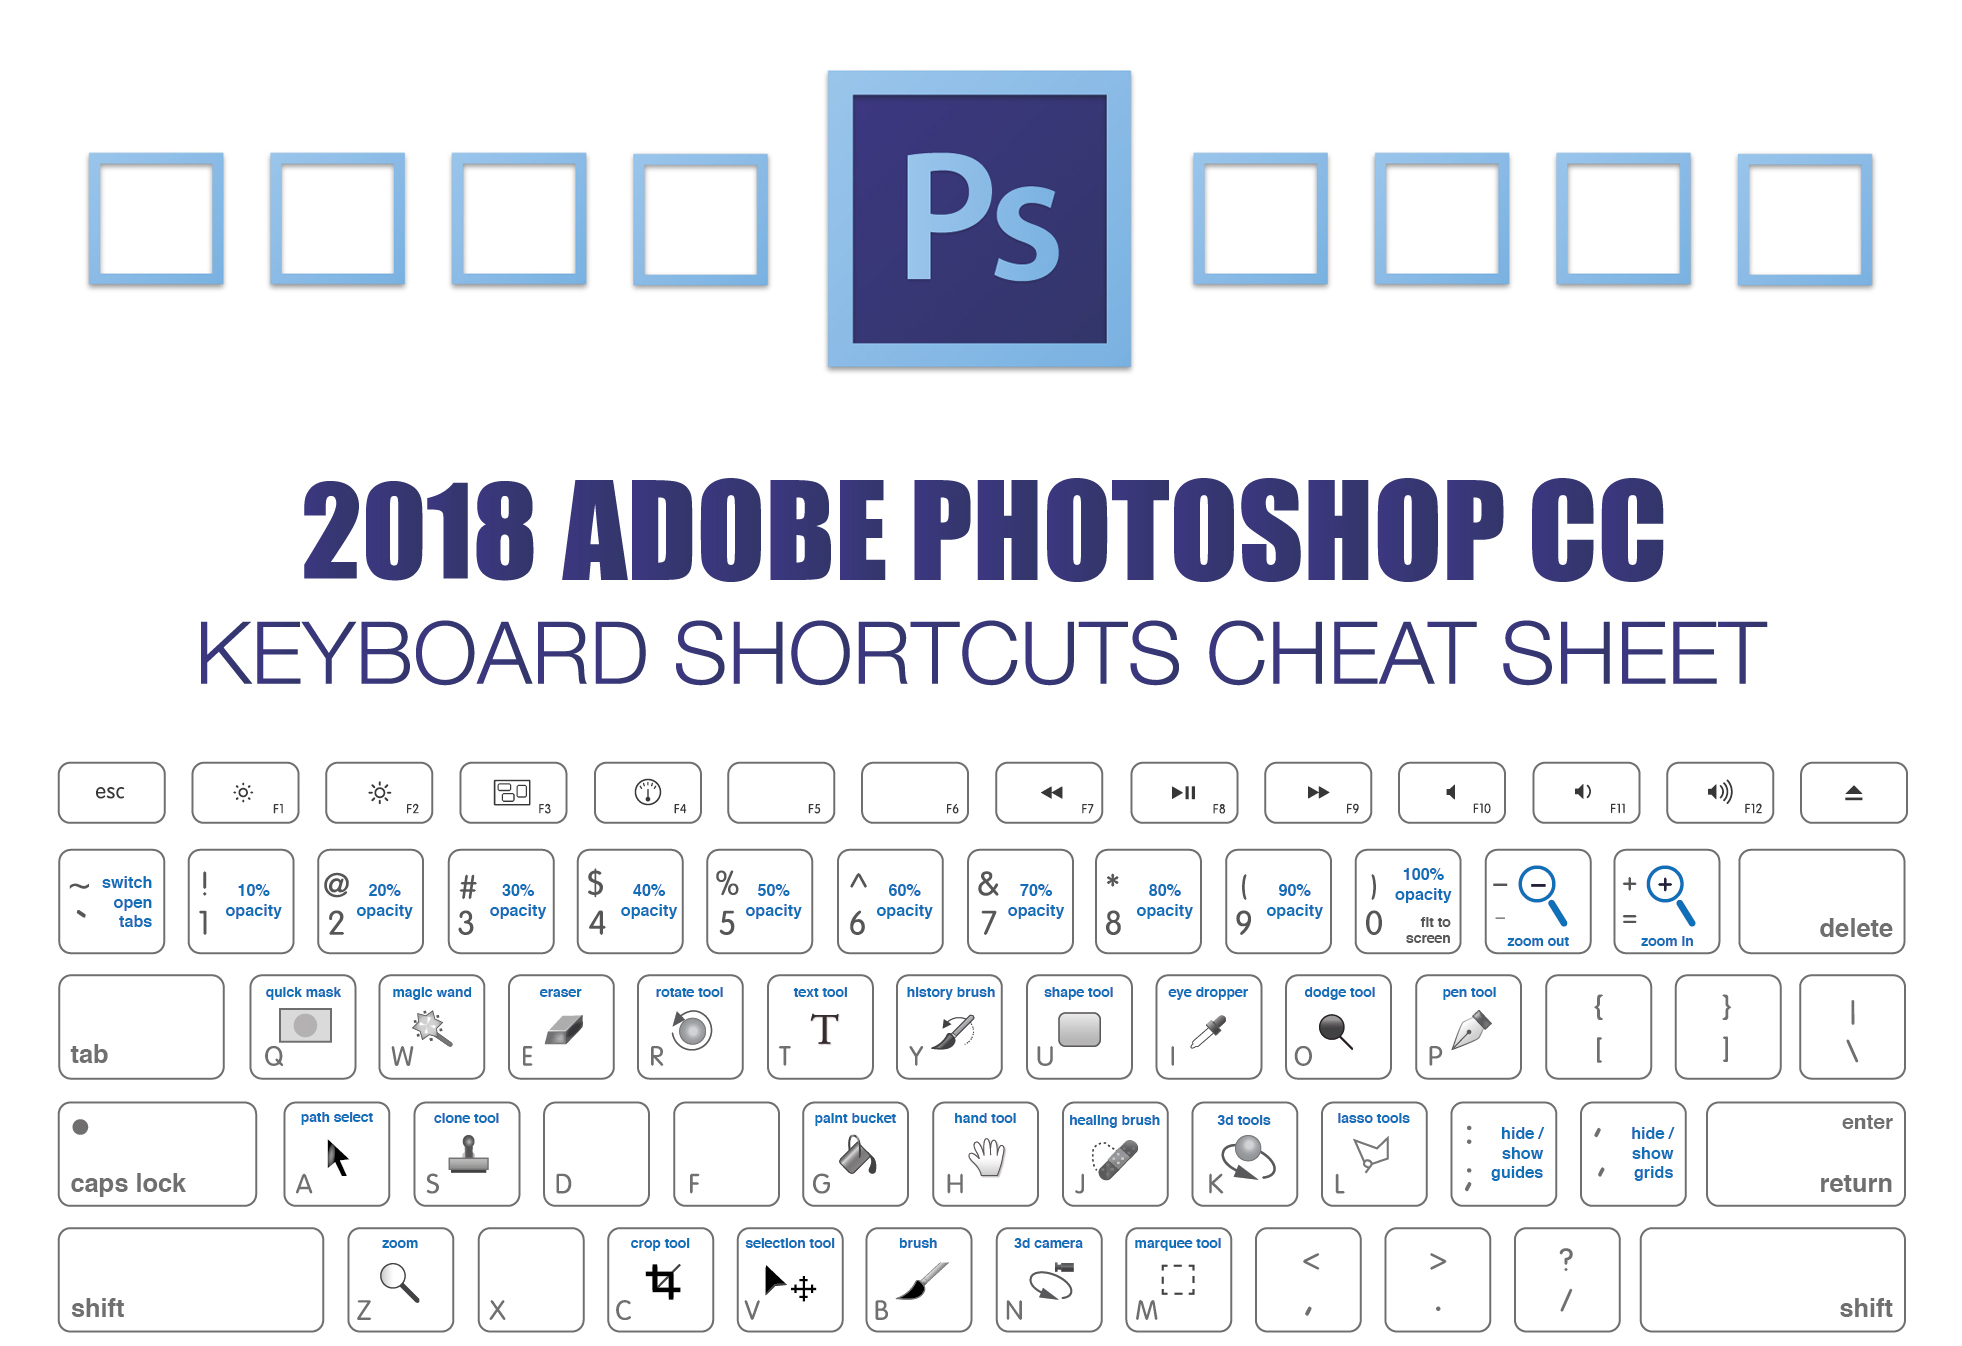 2018 Adobe Photoshop Keyboard Shortcuts Cheat Sheet - Make A